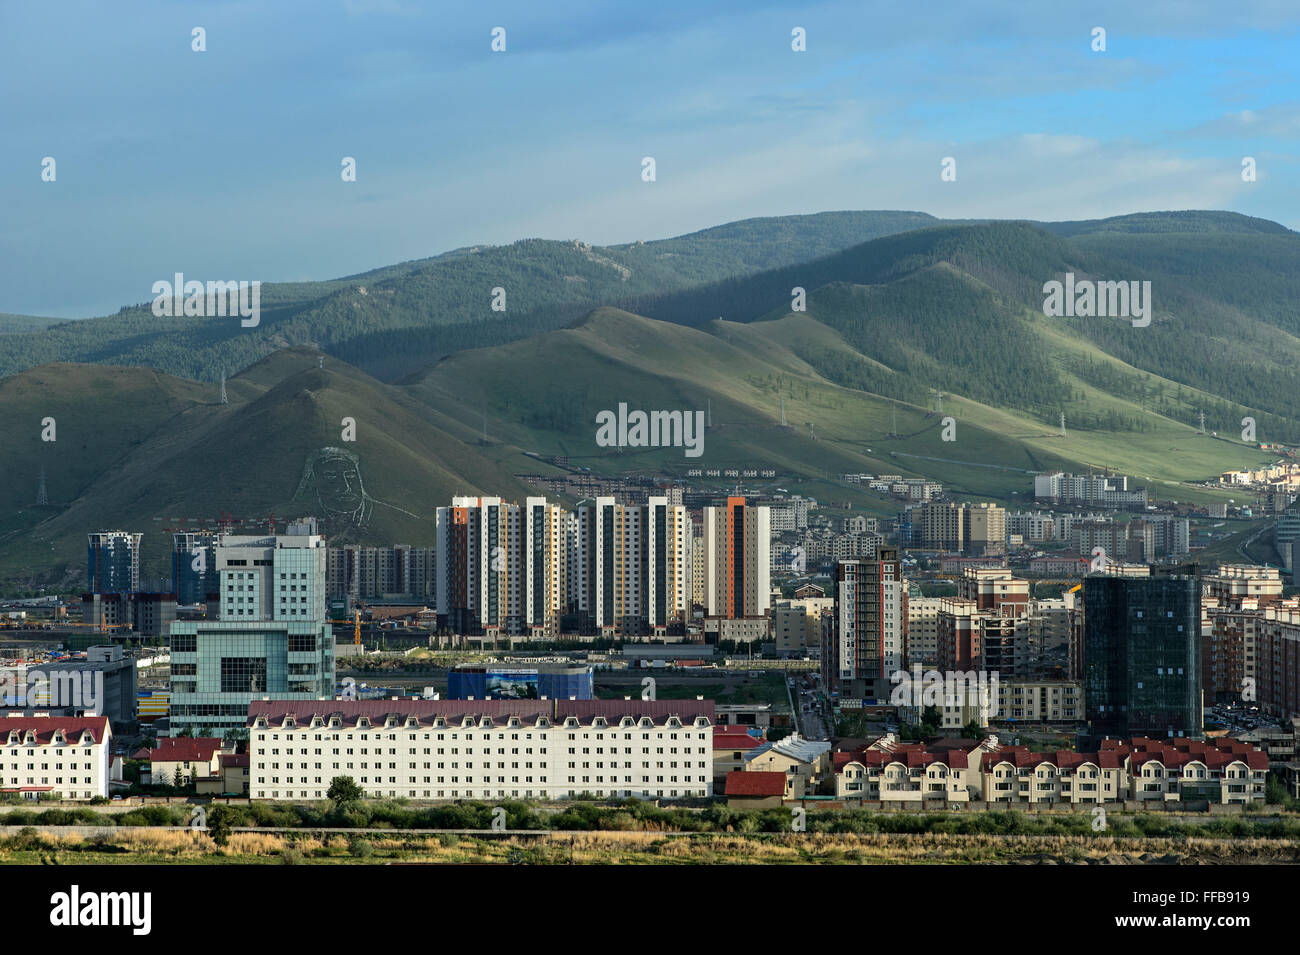 View of modern residential district, behind mountains Bogd Khan with portrait of Genghis Khan, Ulan Bator, Mongolia - Stock Image